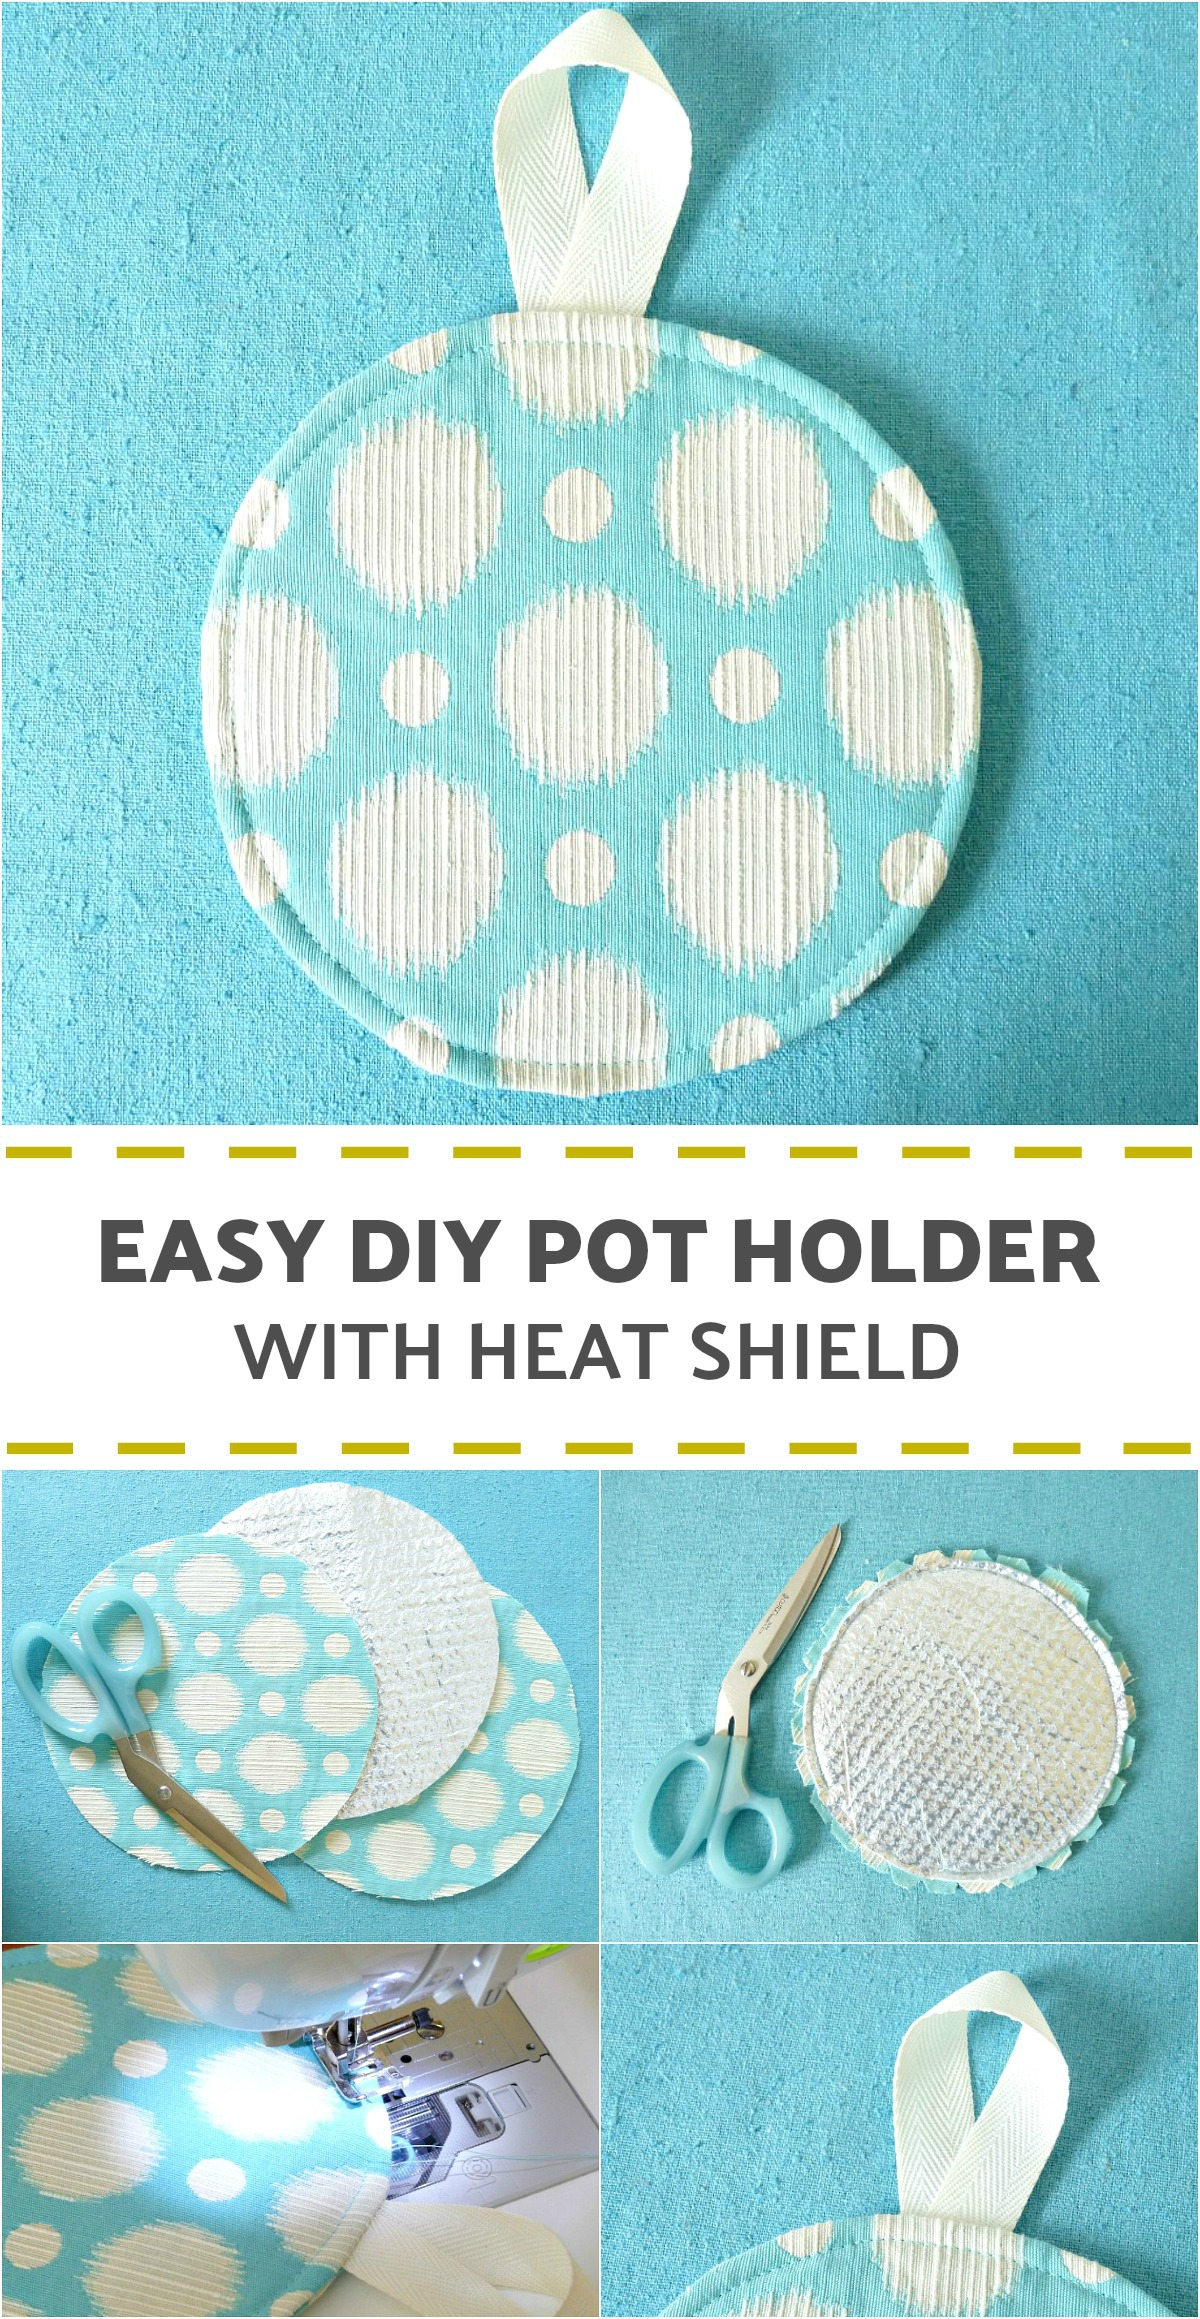 Learn How to Make This Easy DIY Pot Holder with Heat Shield. Yes, You Can Sew Your Own Fabric Trivet! #sewing #potholder #fabriccrafts #diy